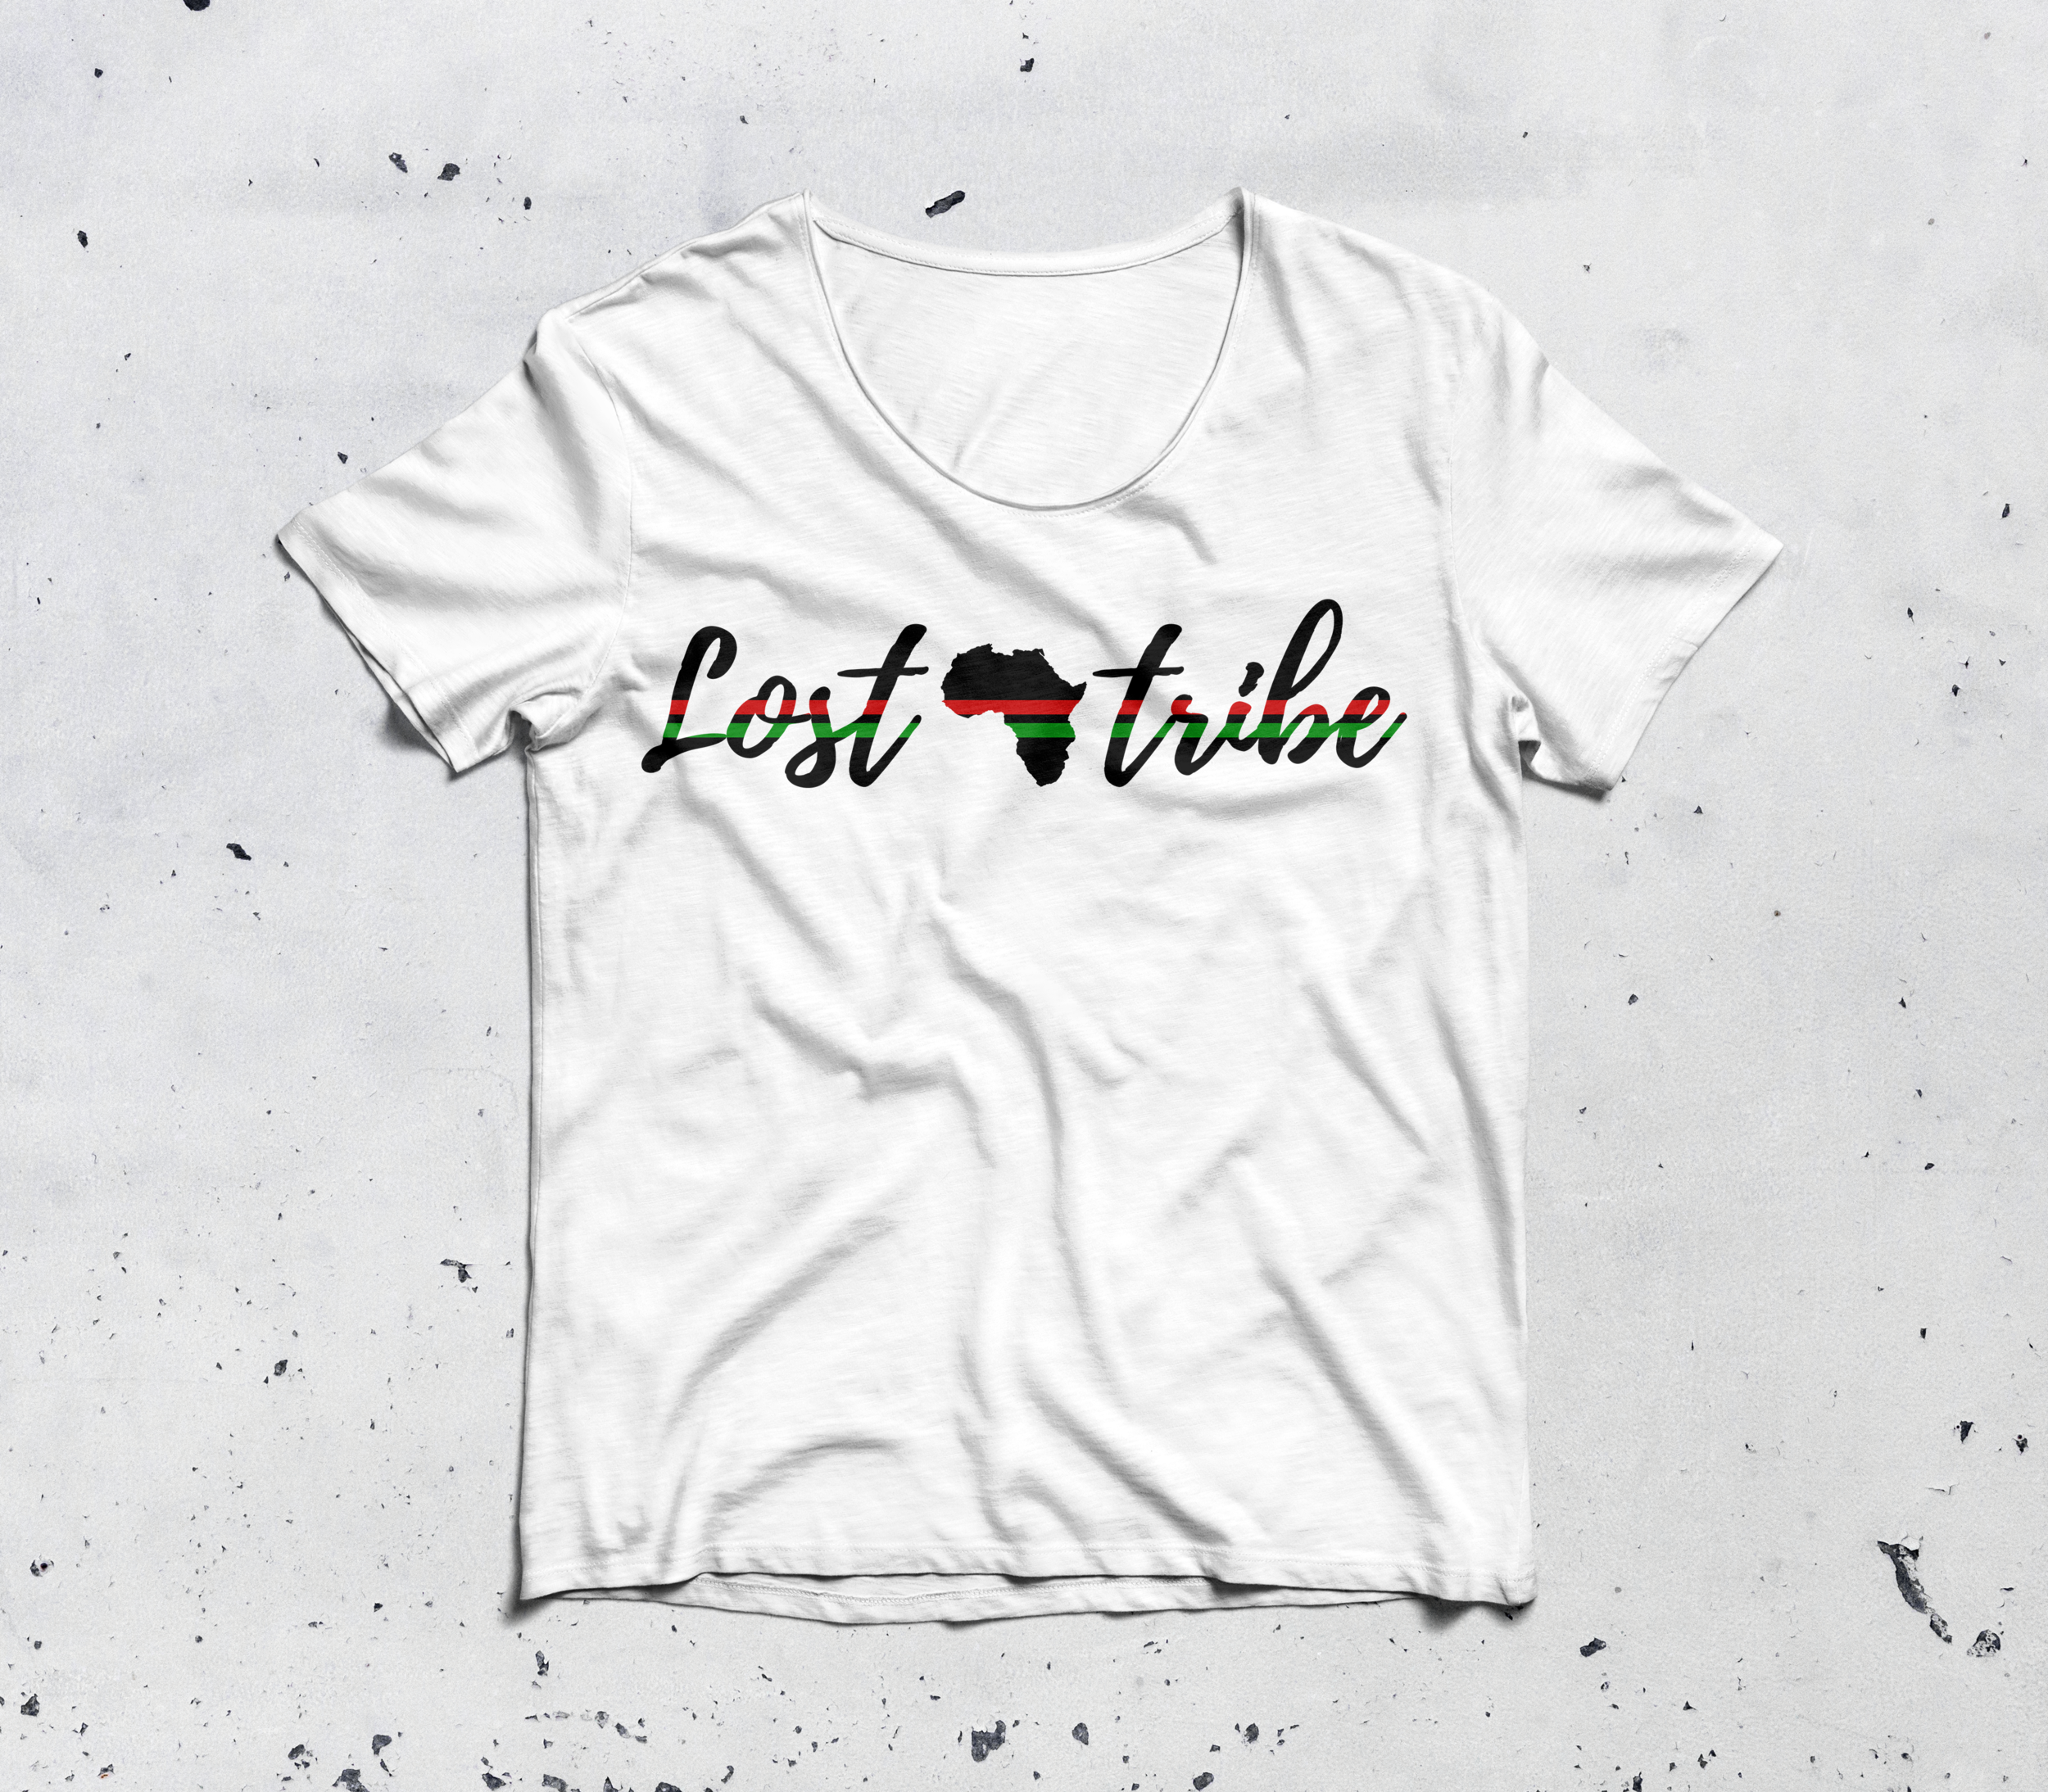 lost tribe shirt.png